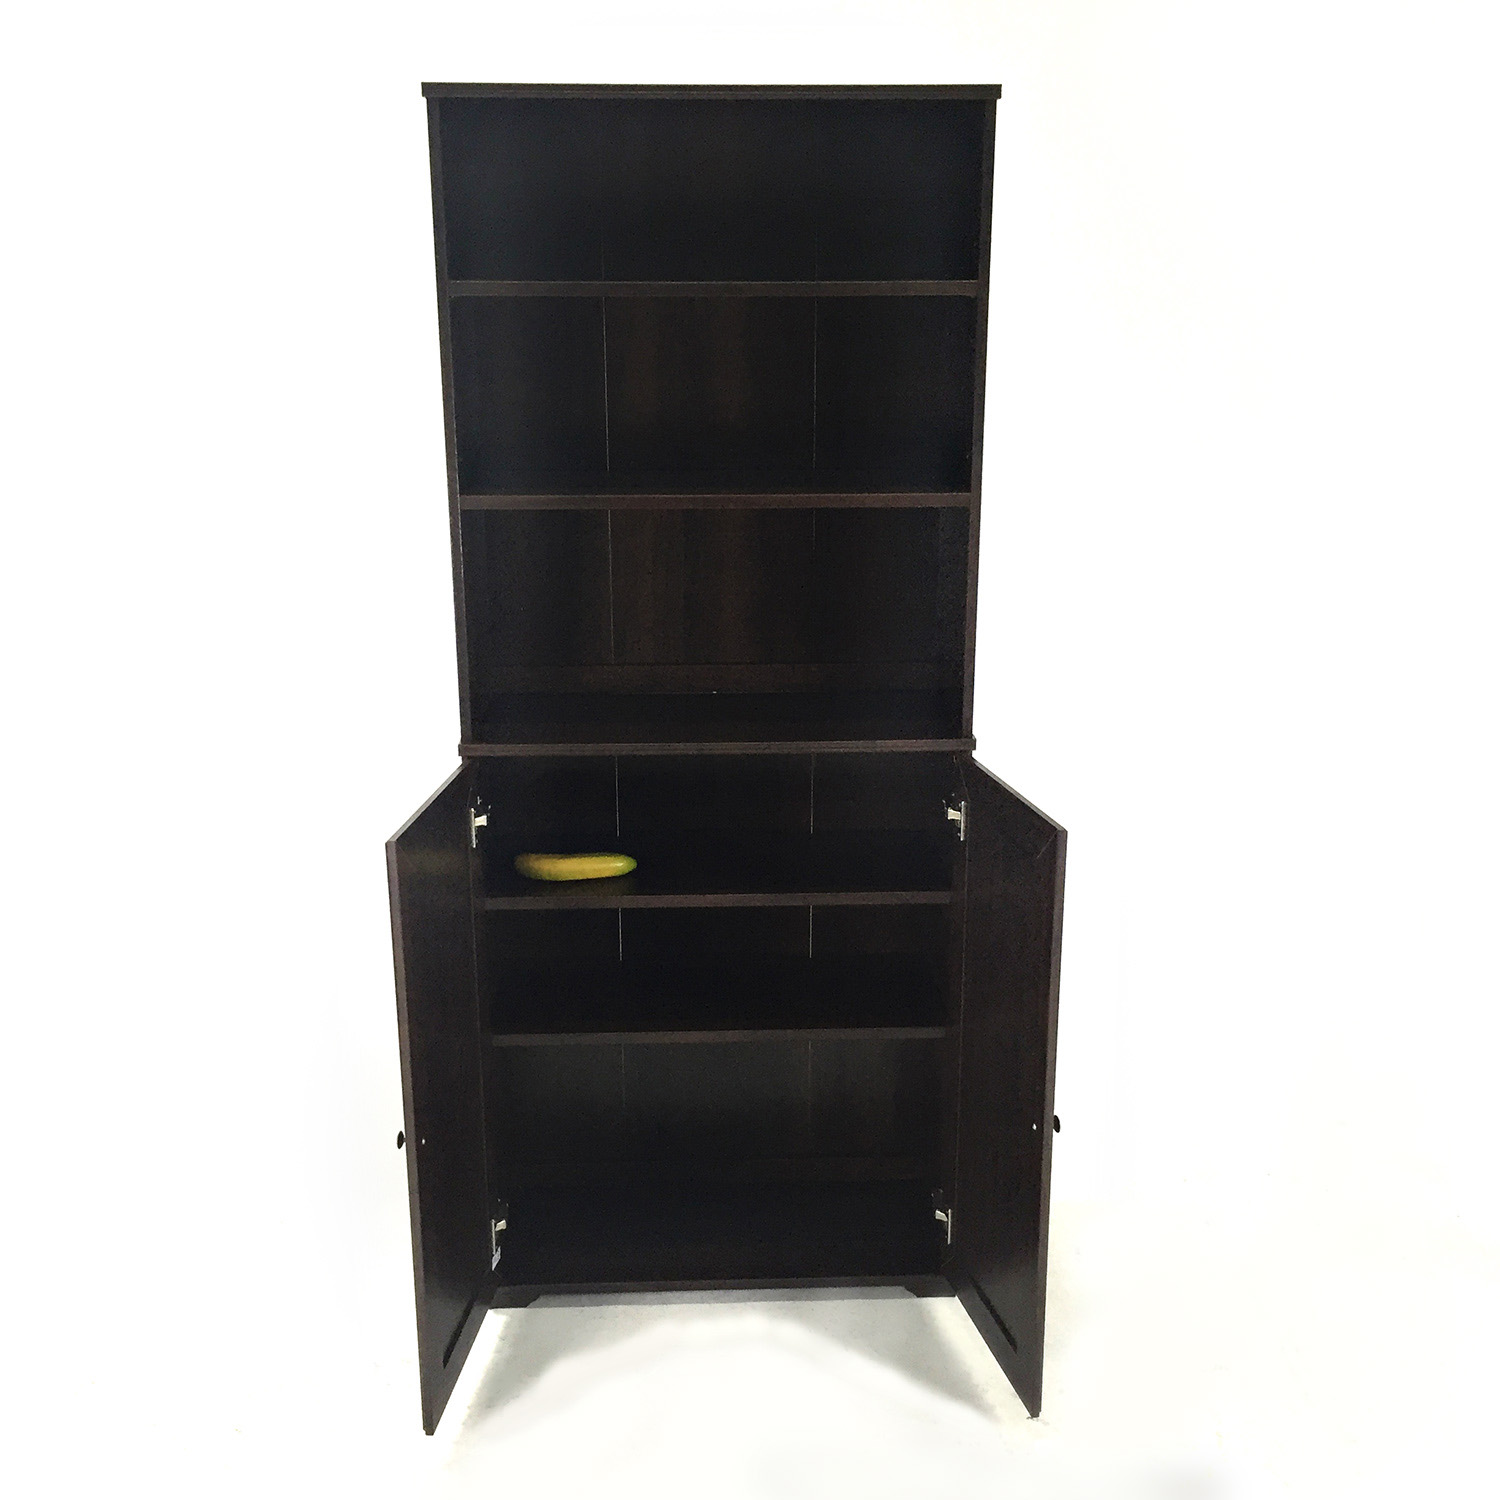 IKEA Cabinet with Book Shelves Storage